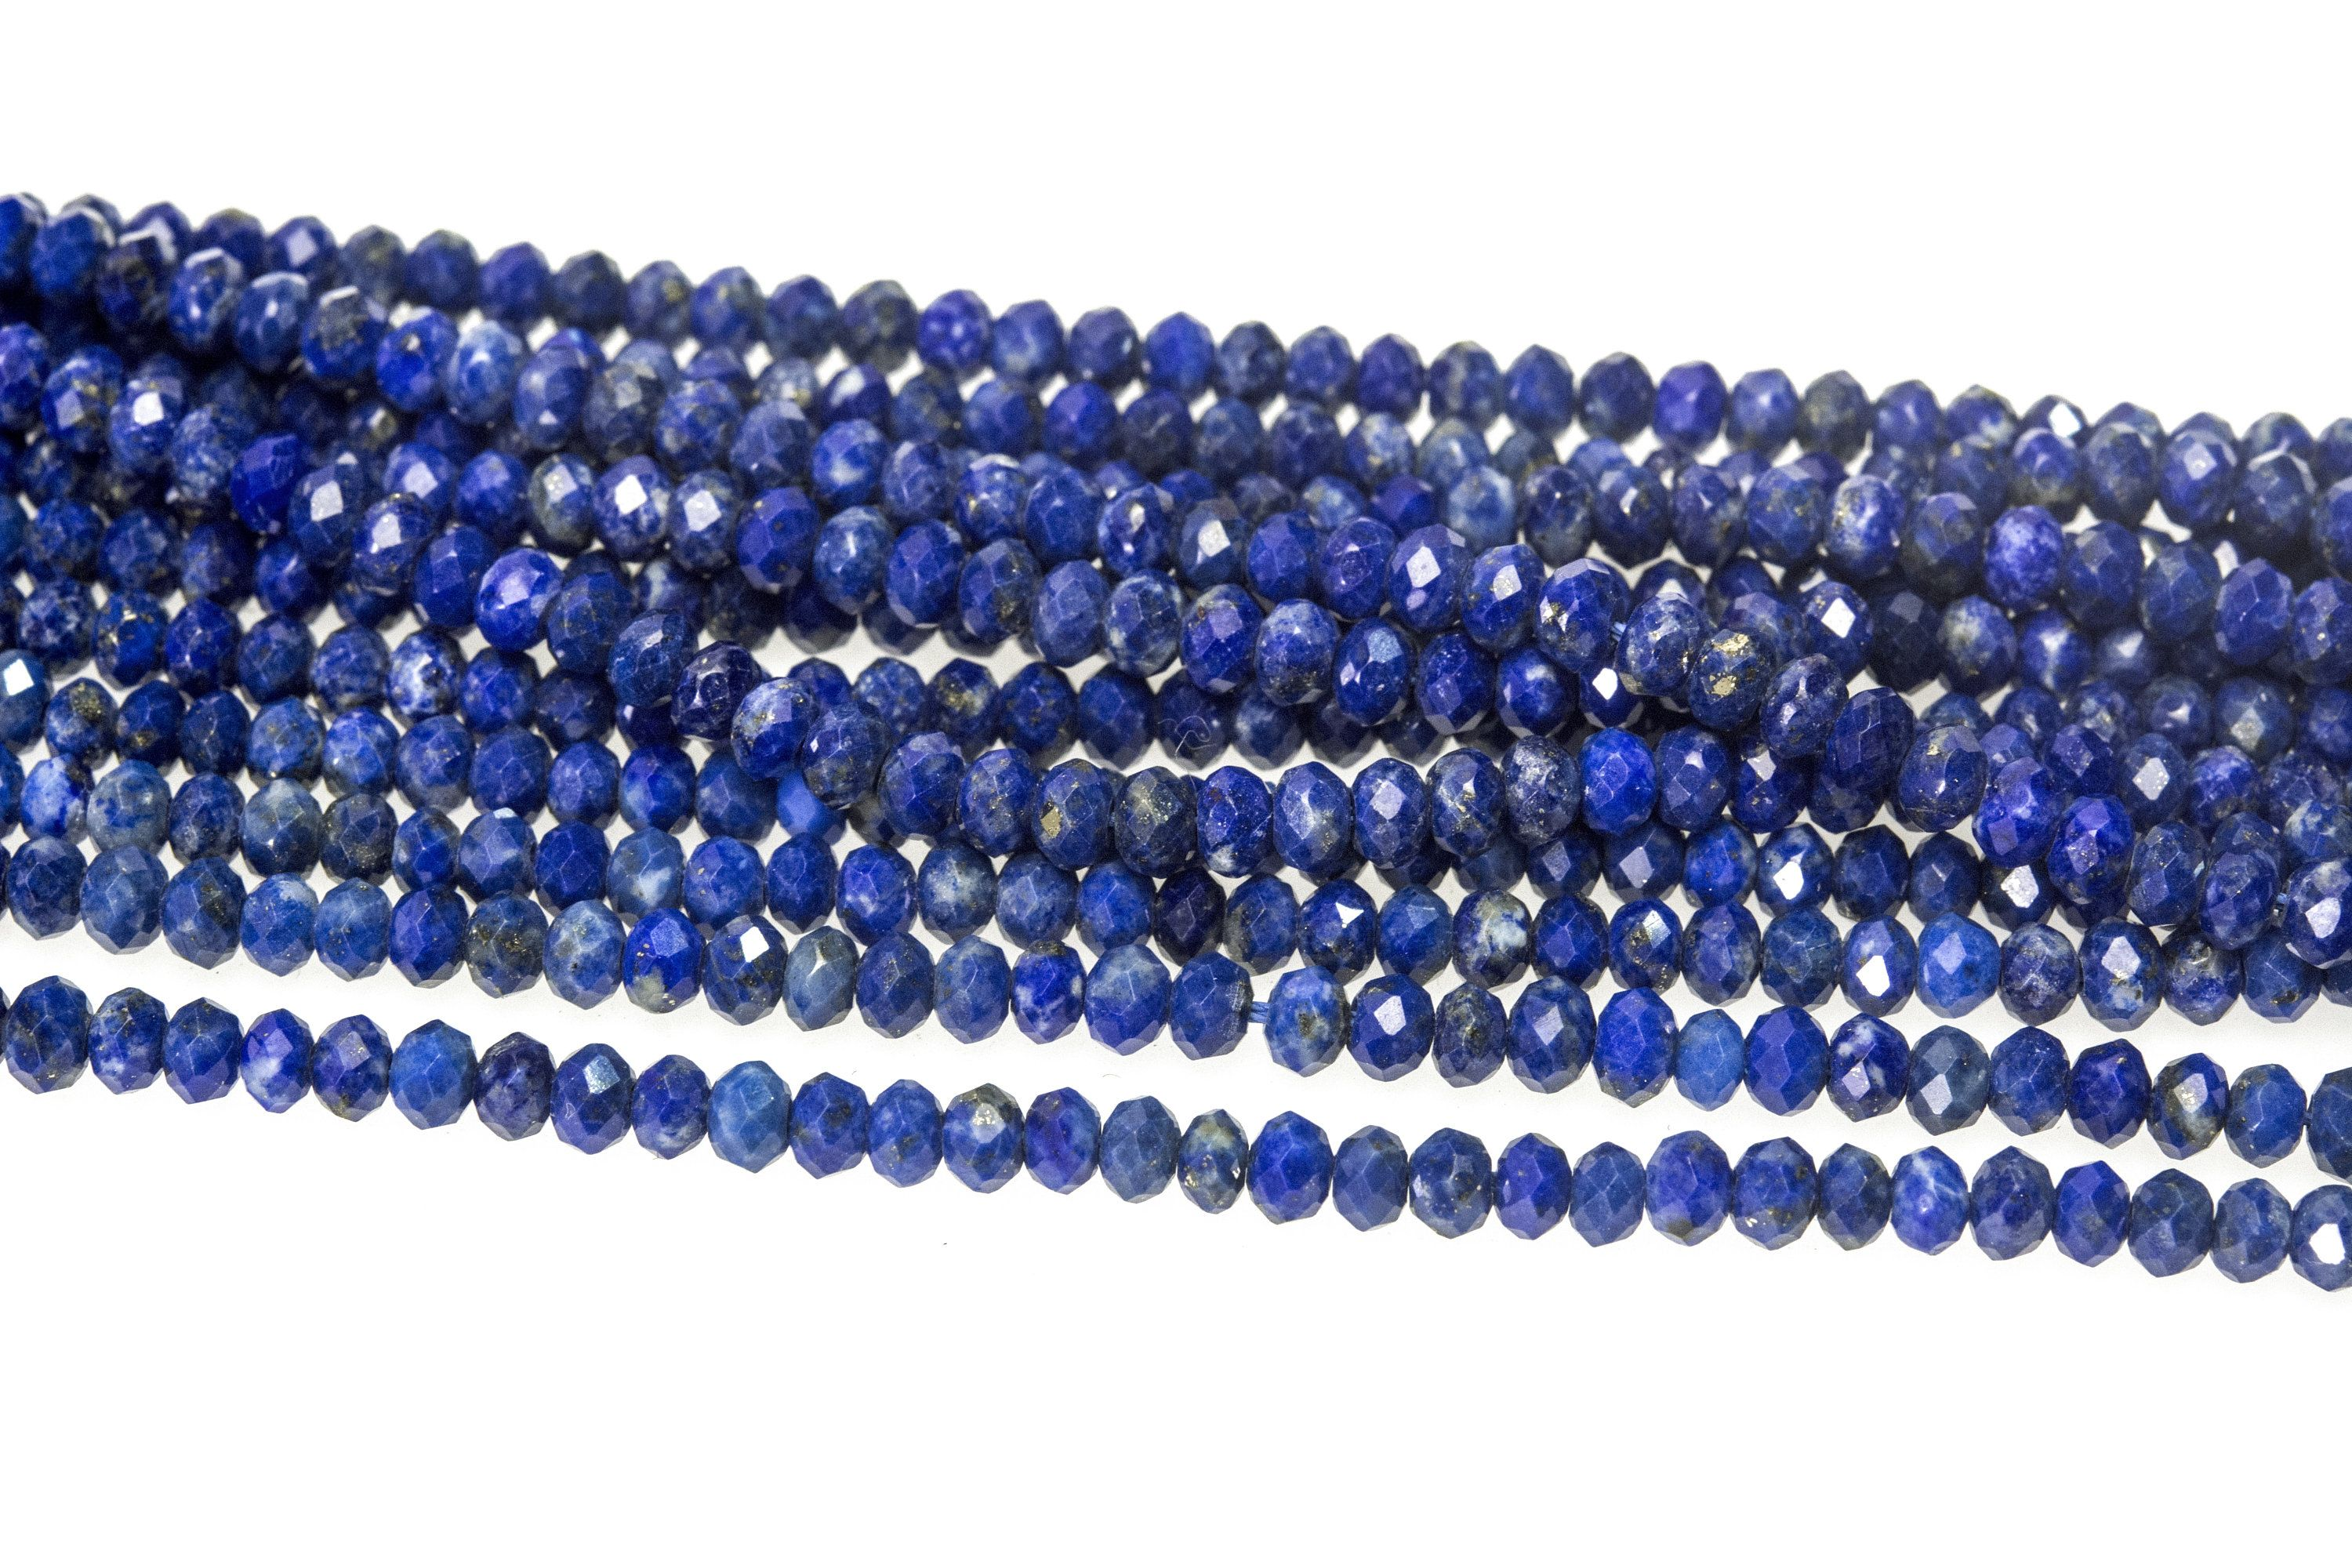 Rondelle faceted beads 2mm Glass beads Round beads DIY Craft supplies Sewing Embroidery Needlework Decoration